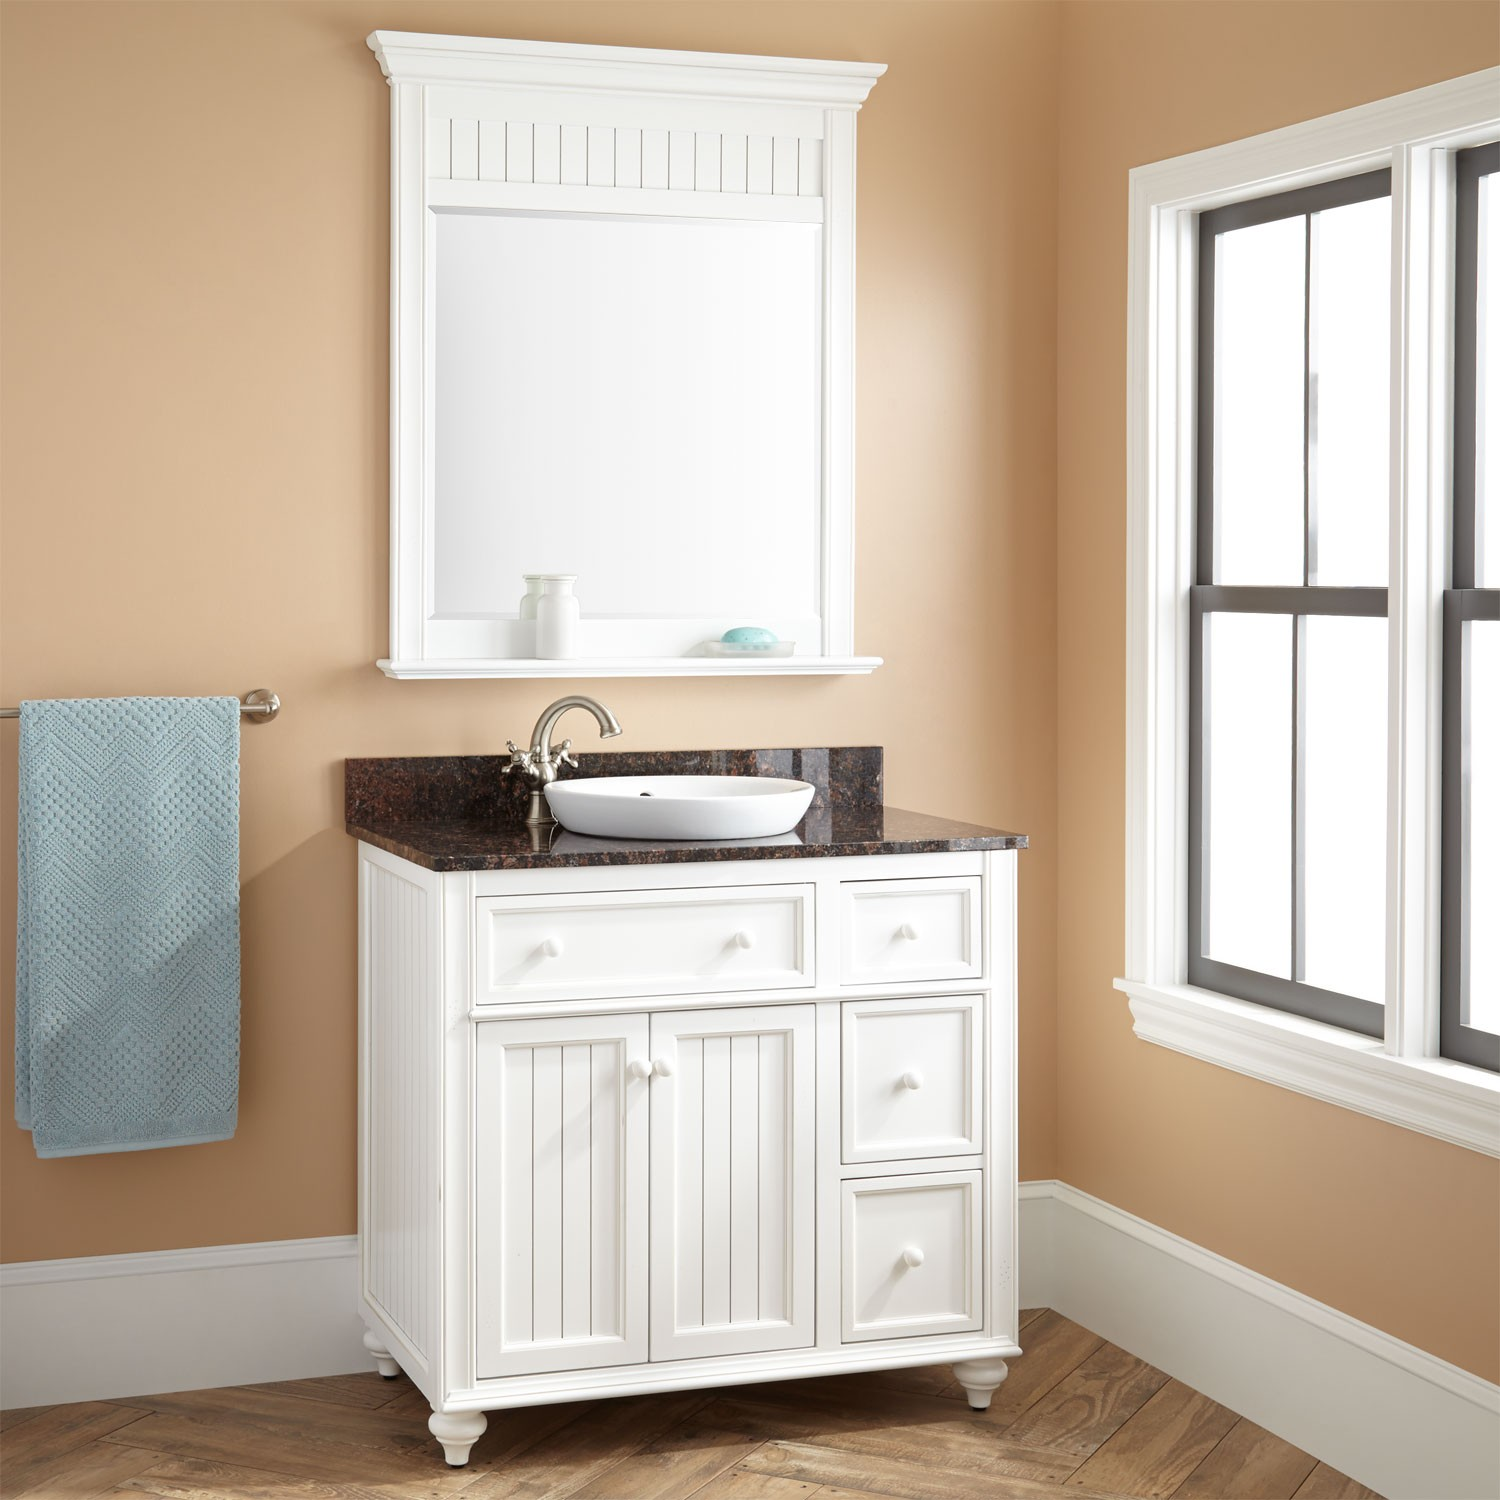 Image of: Cabinet White Dresser With Mirror